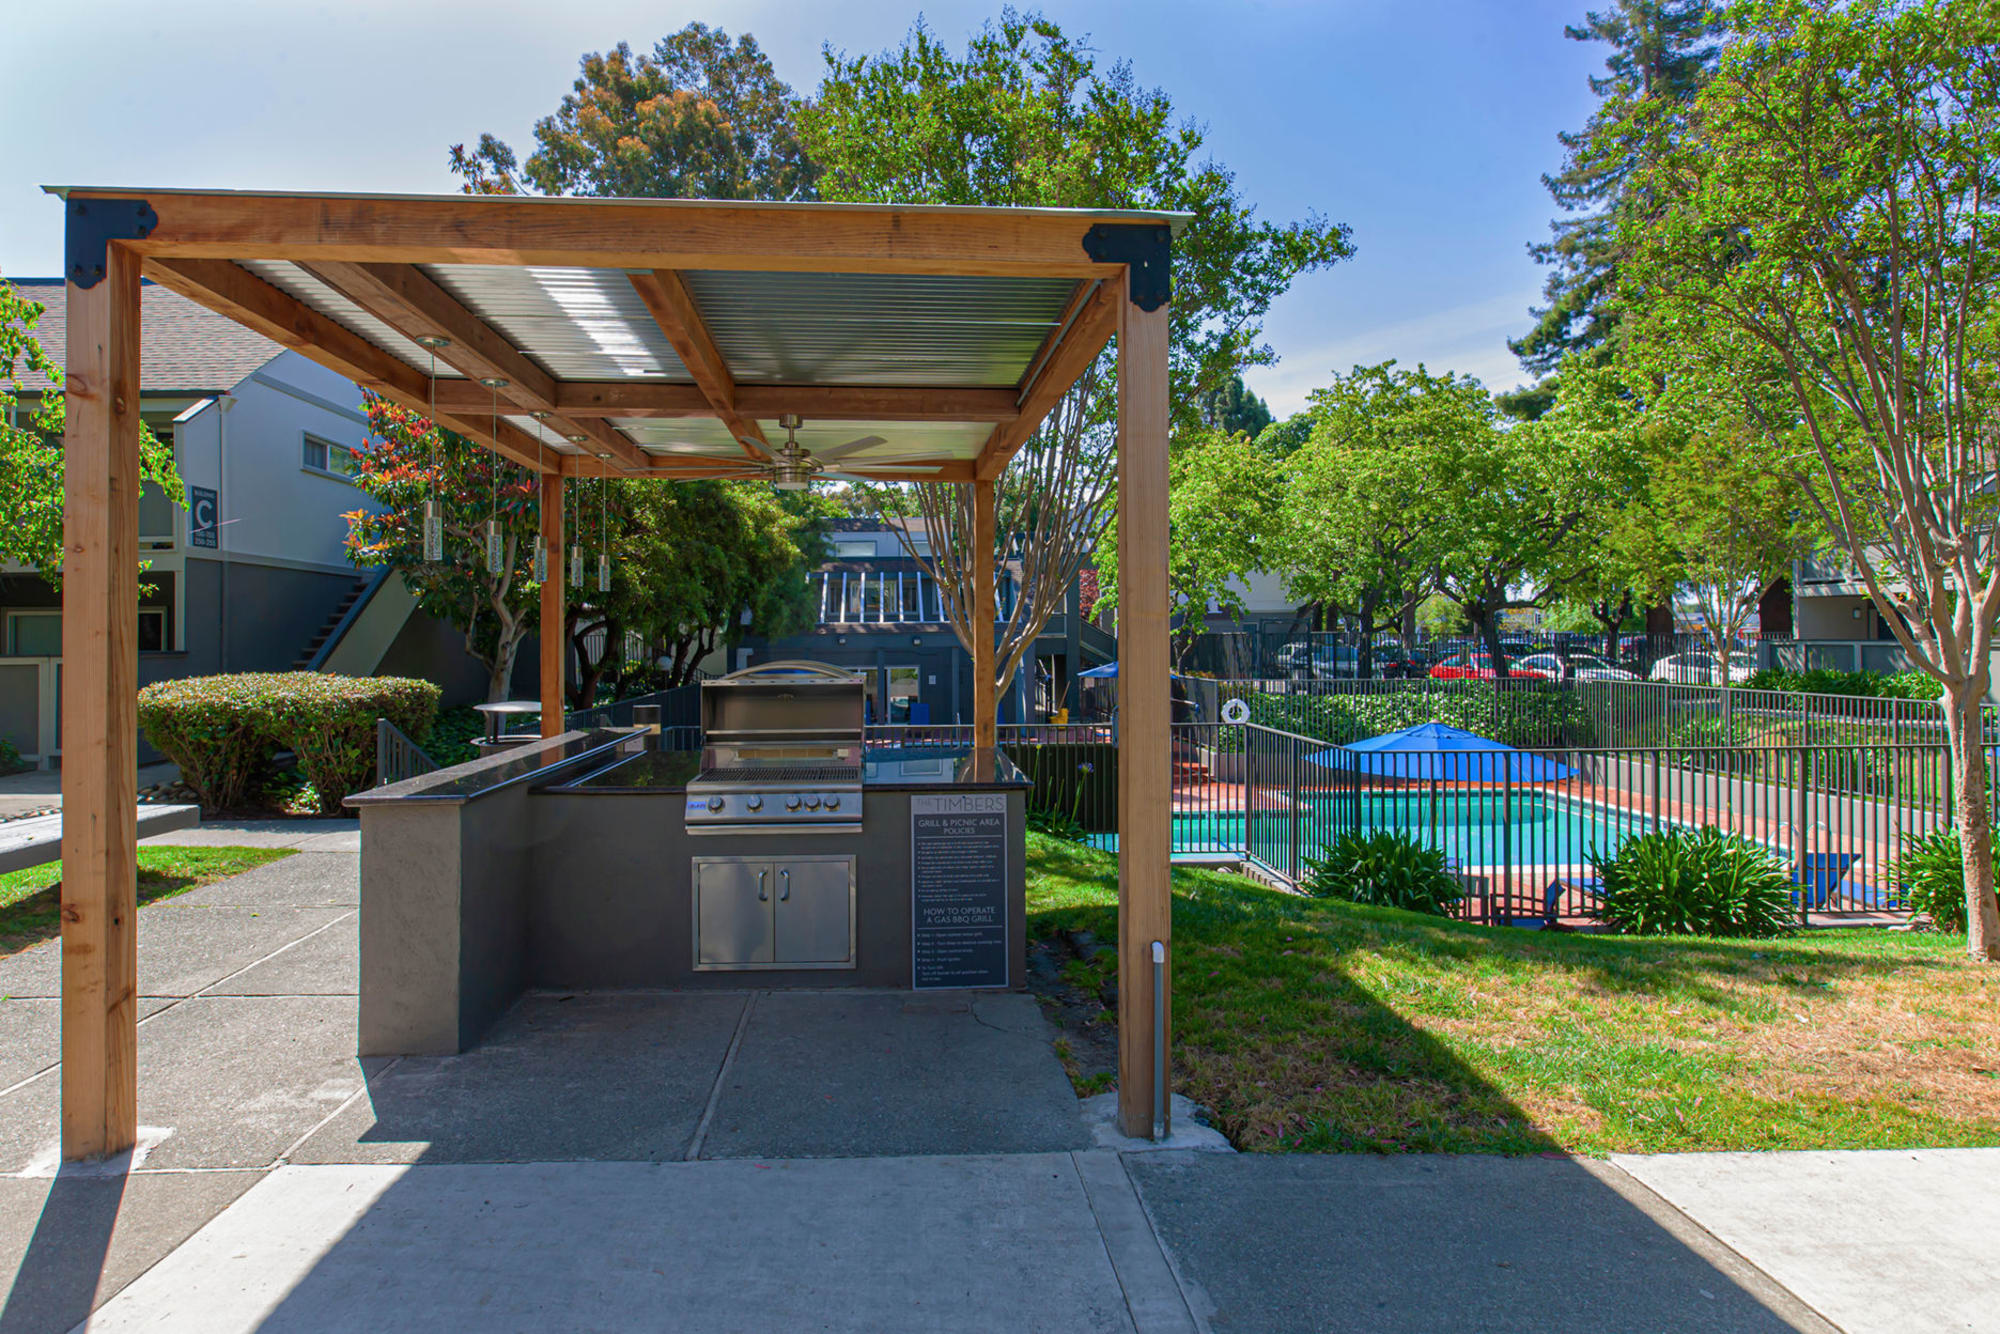 Outdoor Covered BBQ atThe Timbers Apartments in Hayward, CA